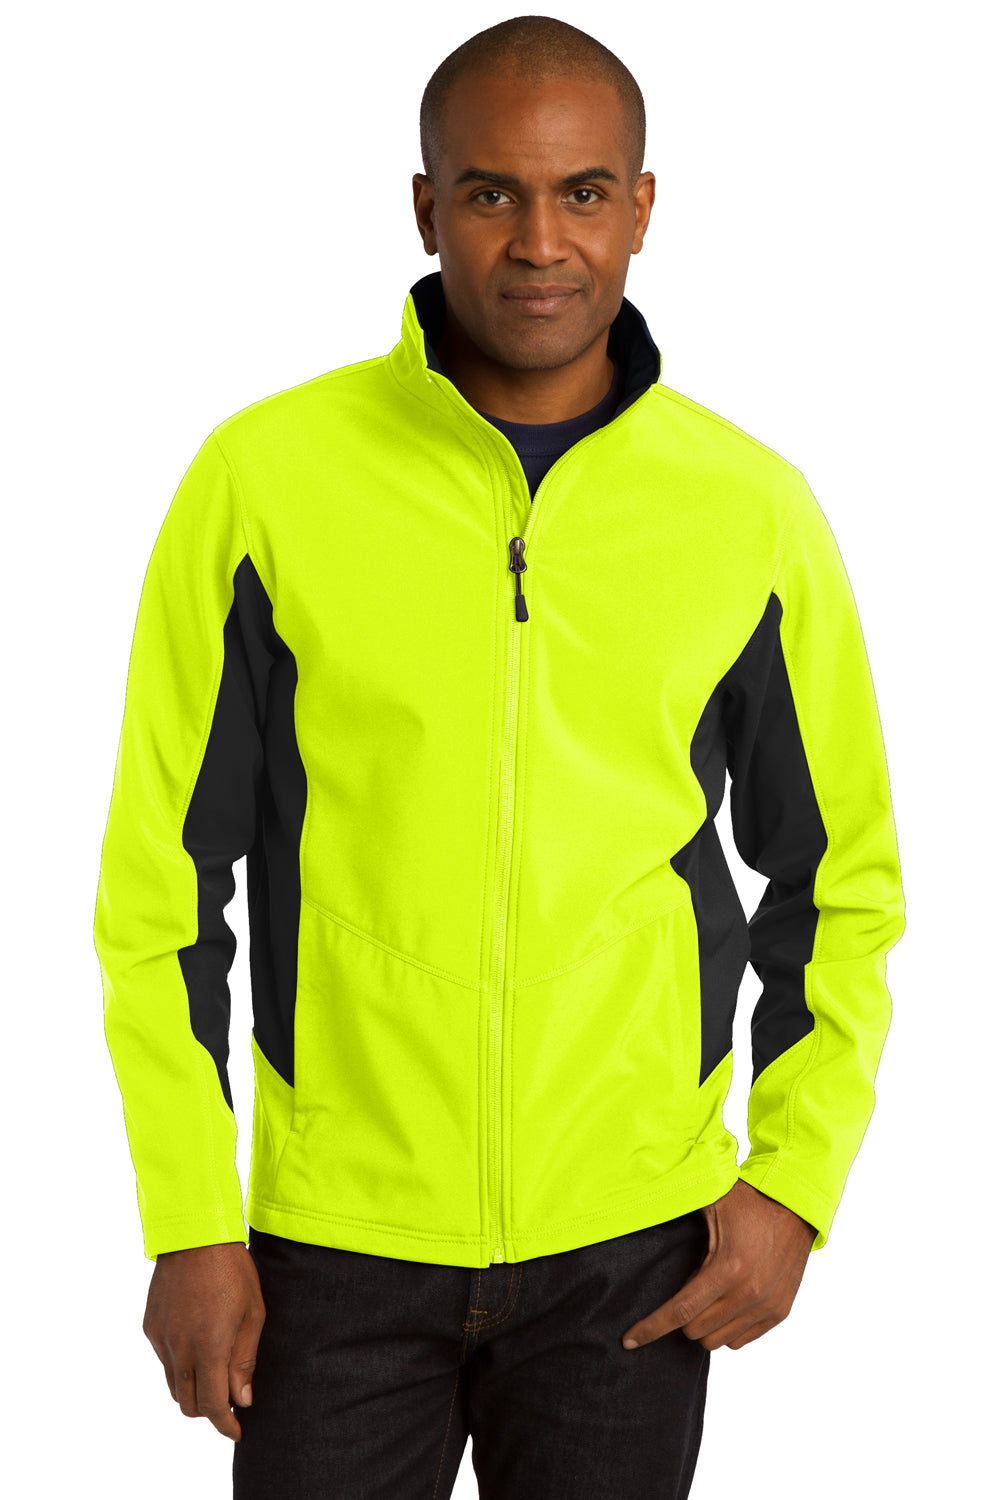 Port Authority J318 Mens Core Wind & Water Resistant Full Zip Jacket Safety Yellow/Black Front